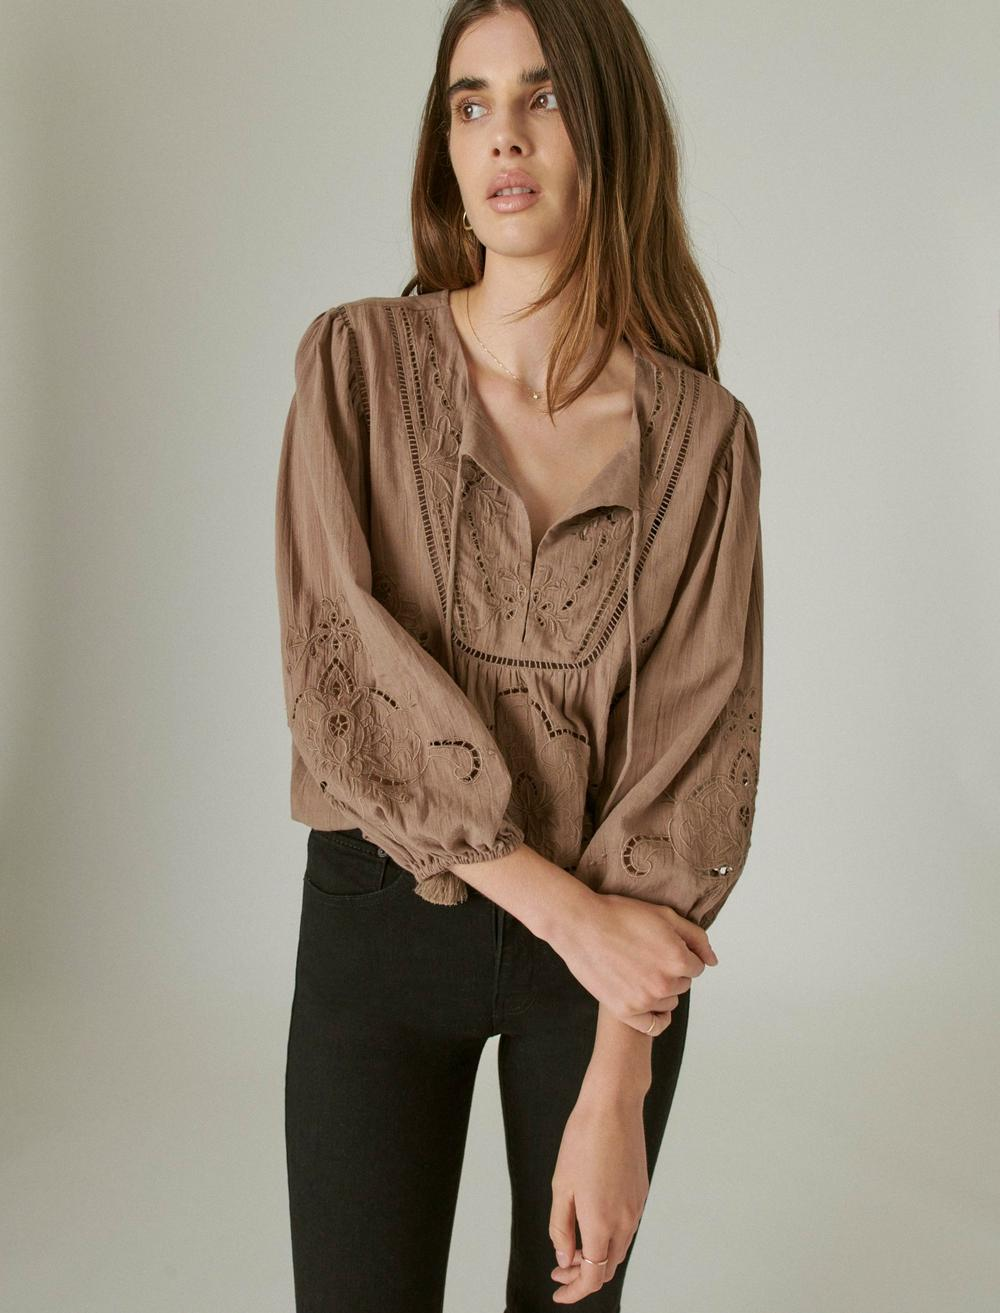 EMBROIDERED PEASANT BLOUSE, image 1